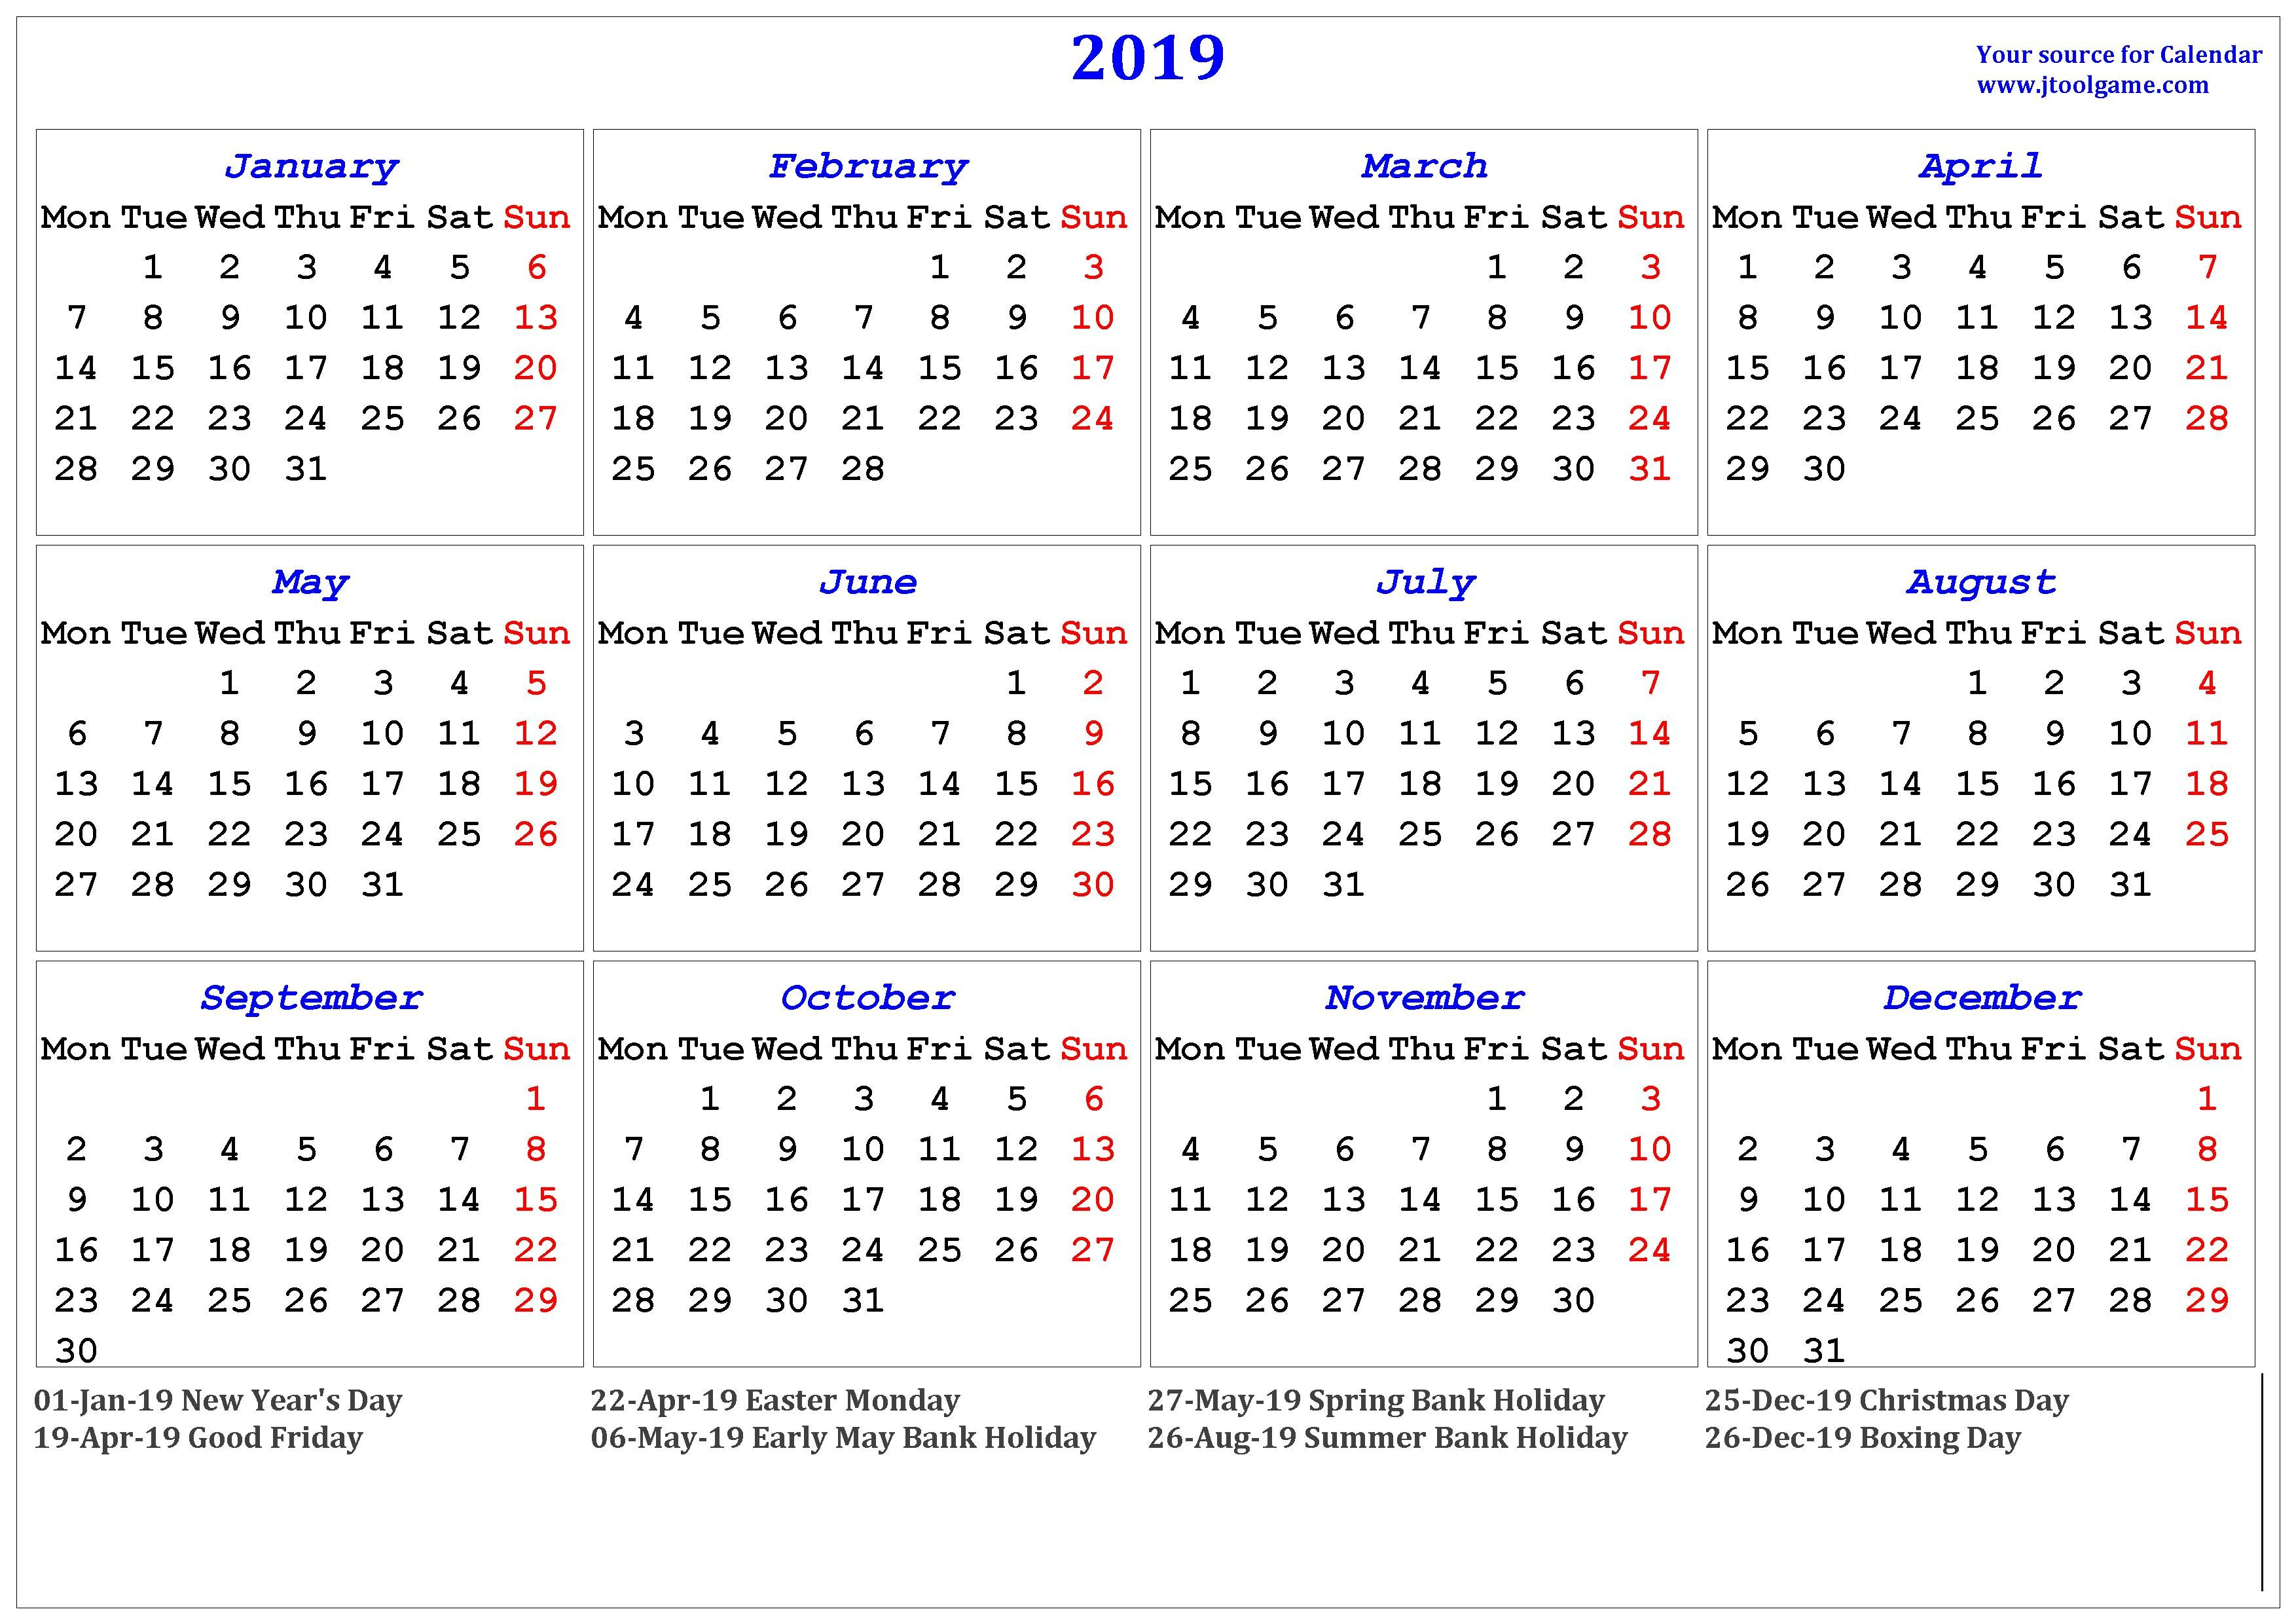 2019 Calendar - Printable Calendar. 2019 Calendar In Multiple Colors Calendar 2019 All Holidays